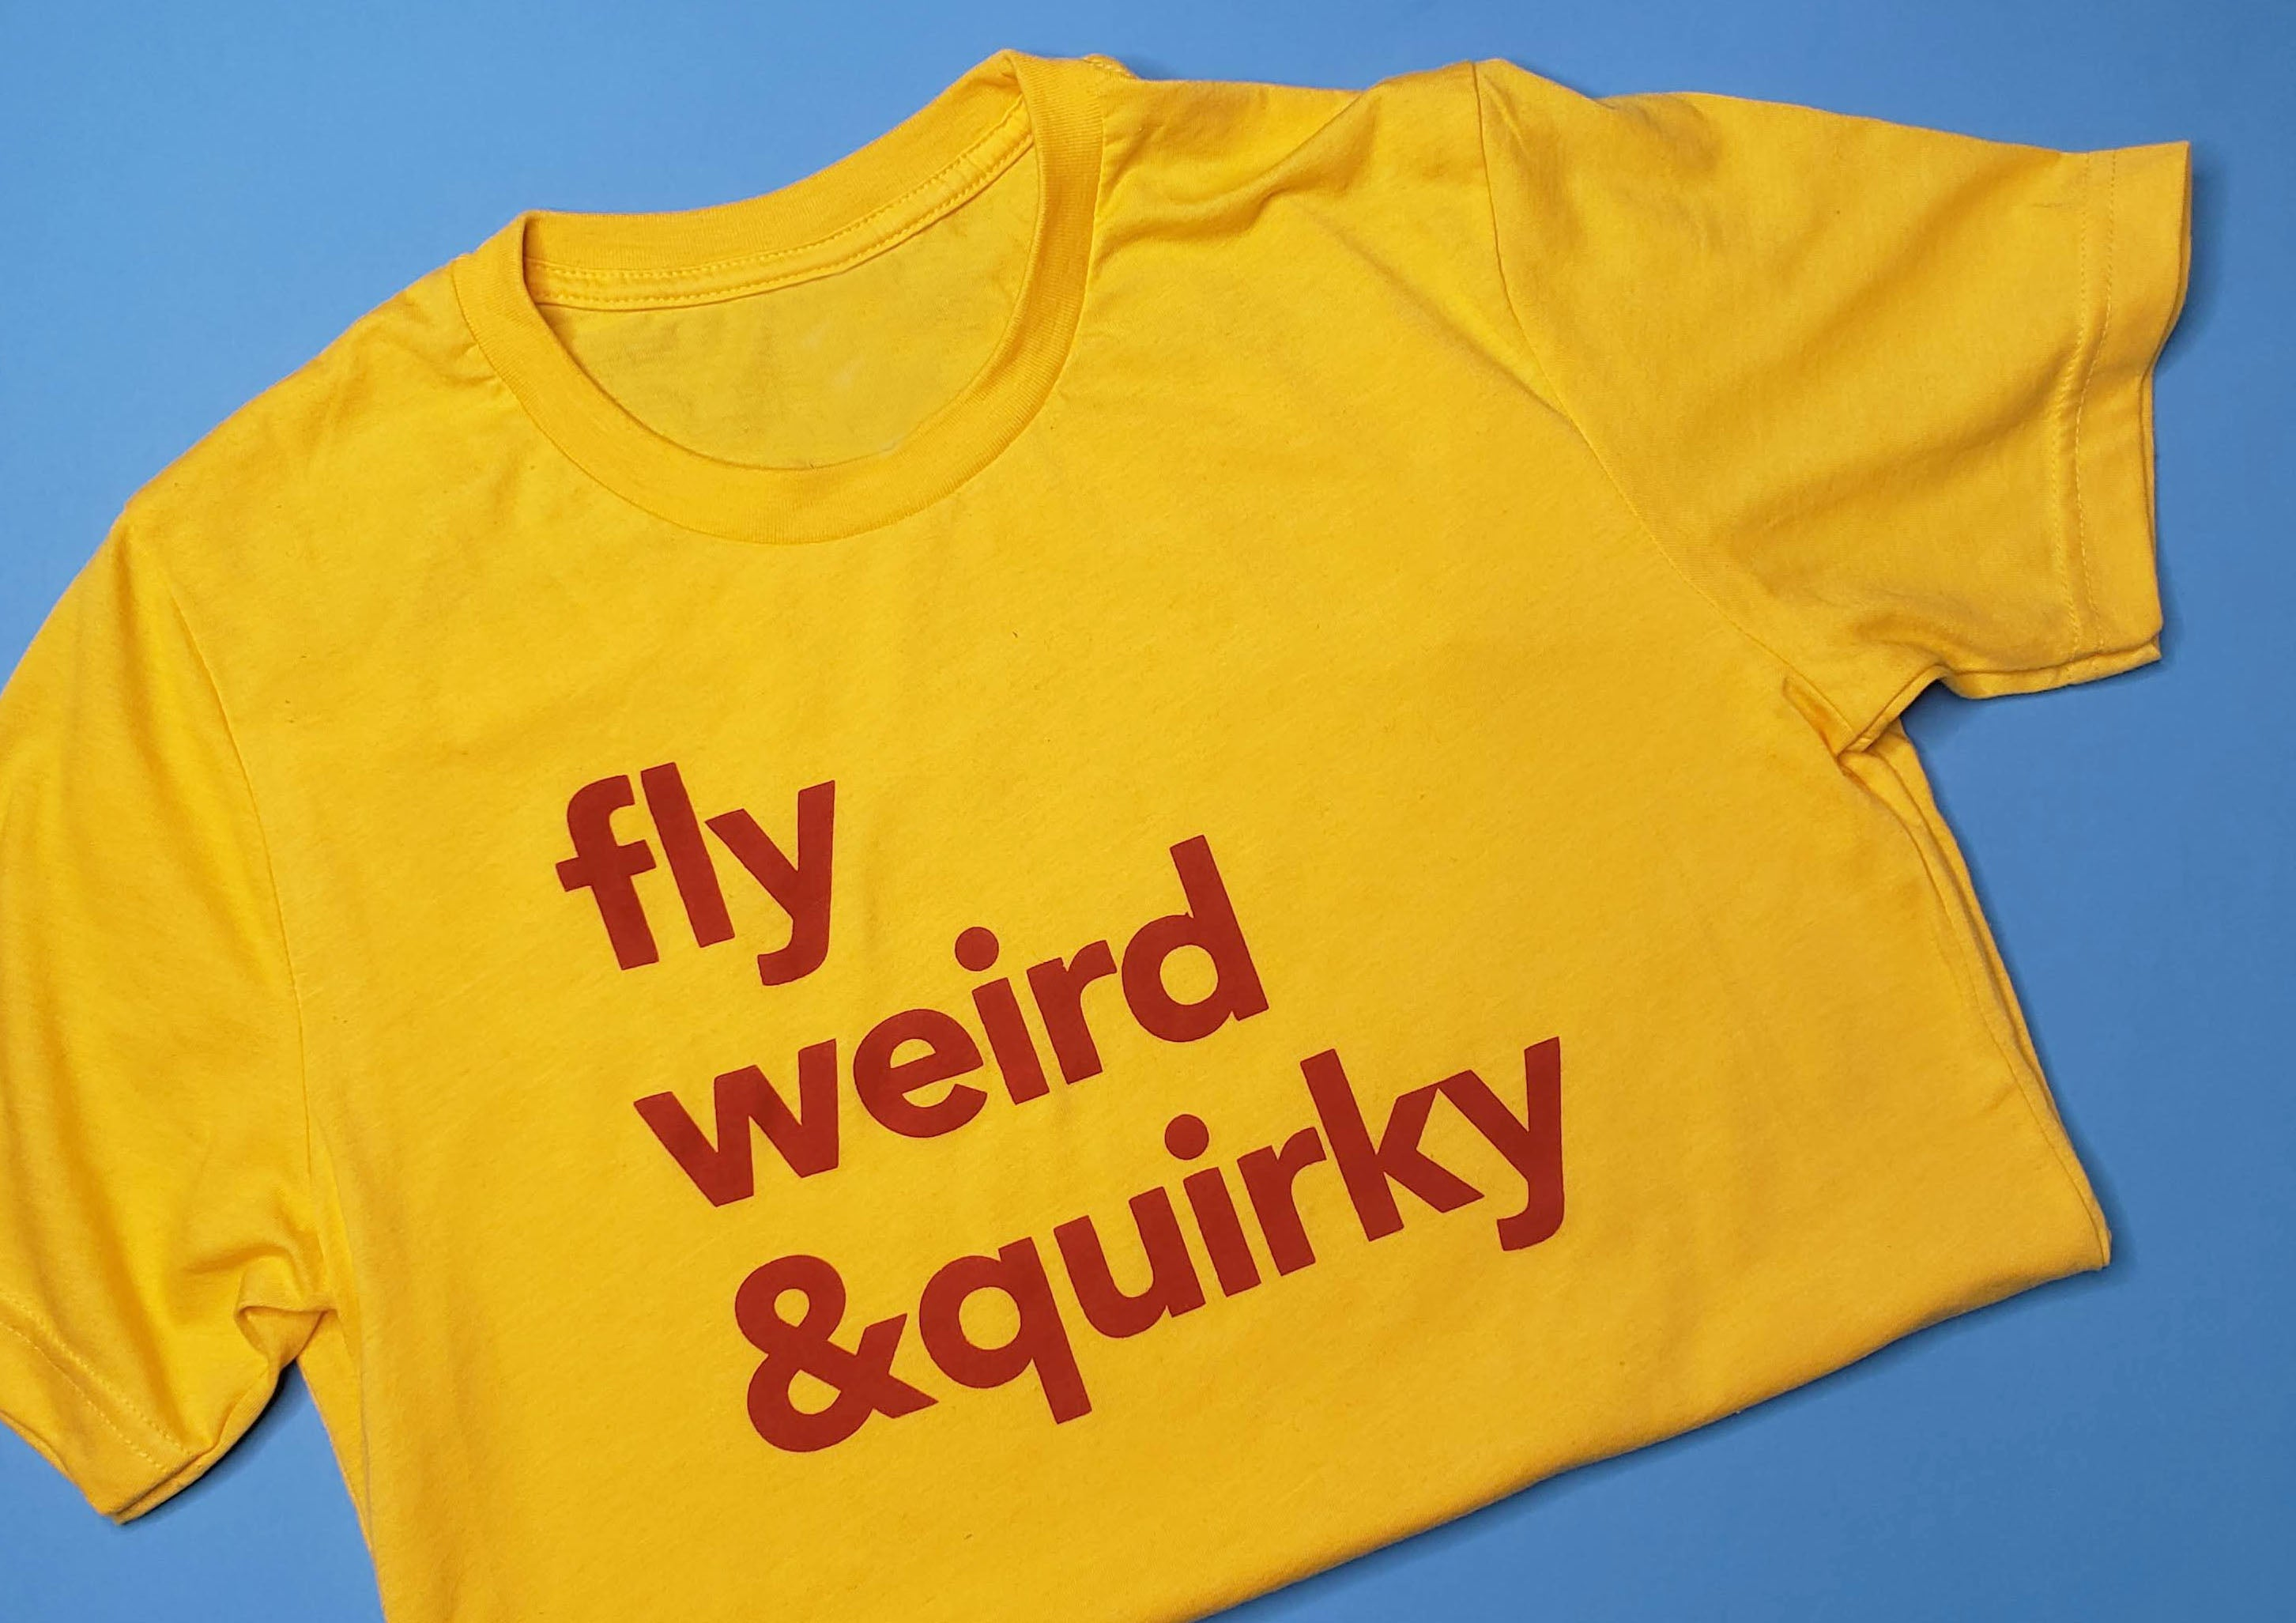 Fly Nerd Fly Weird & Quirky Unisex Tee